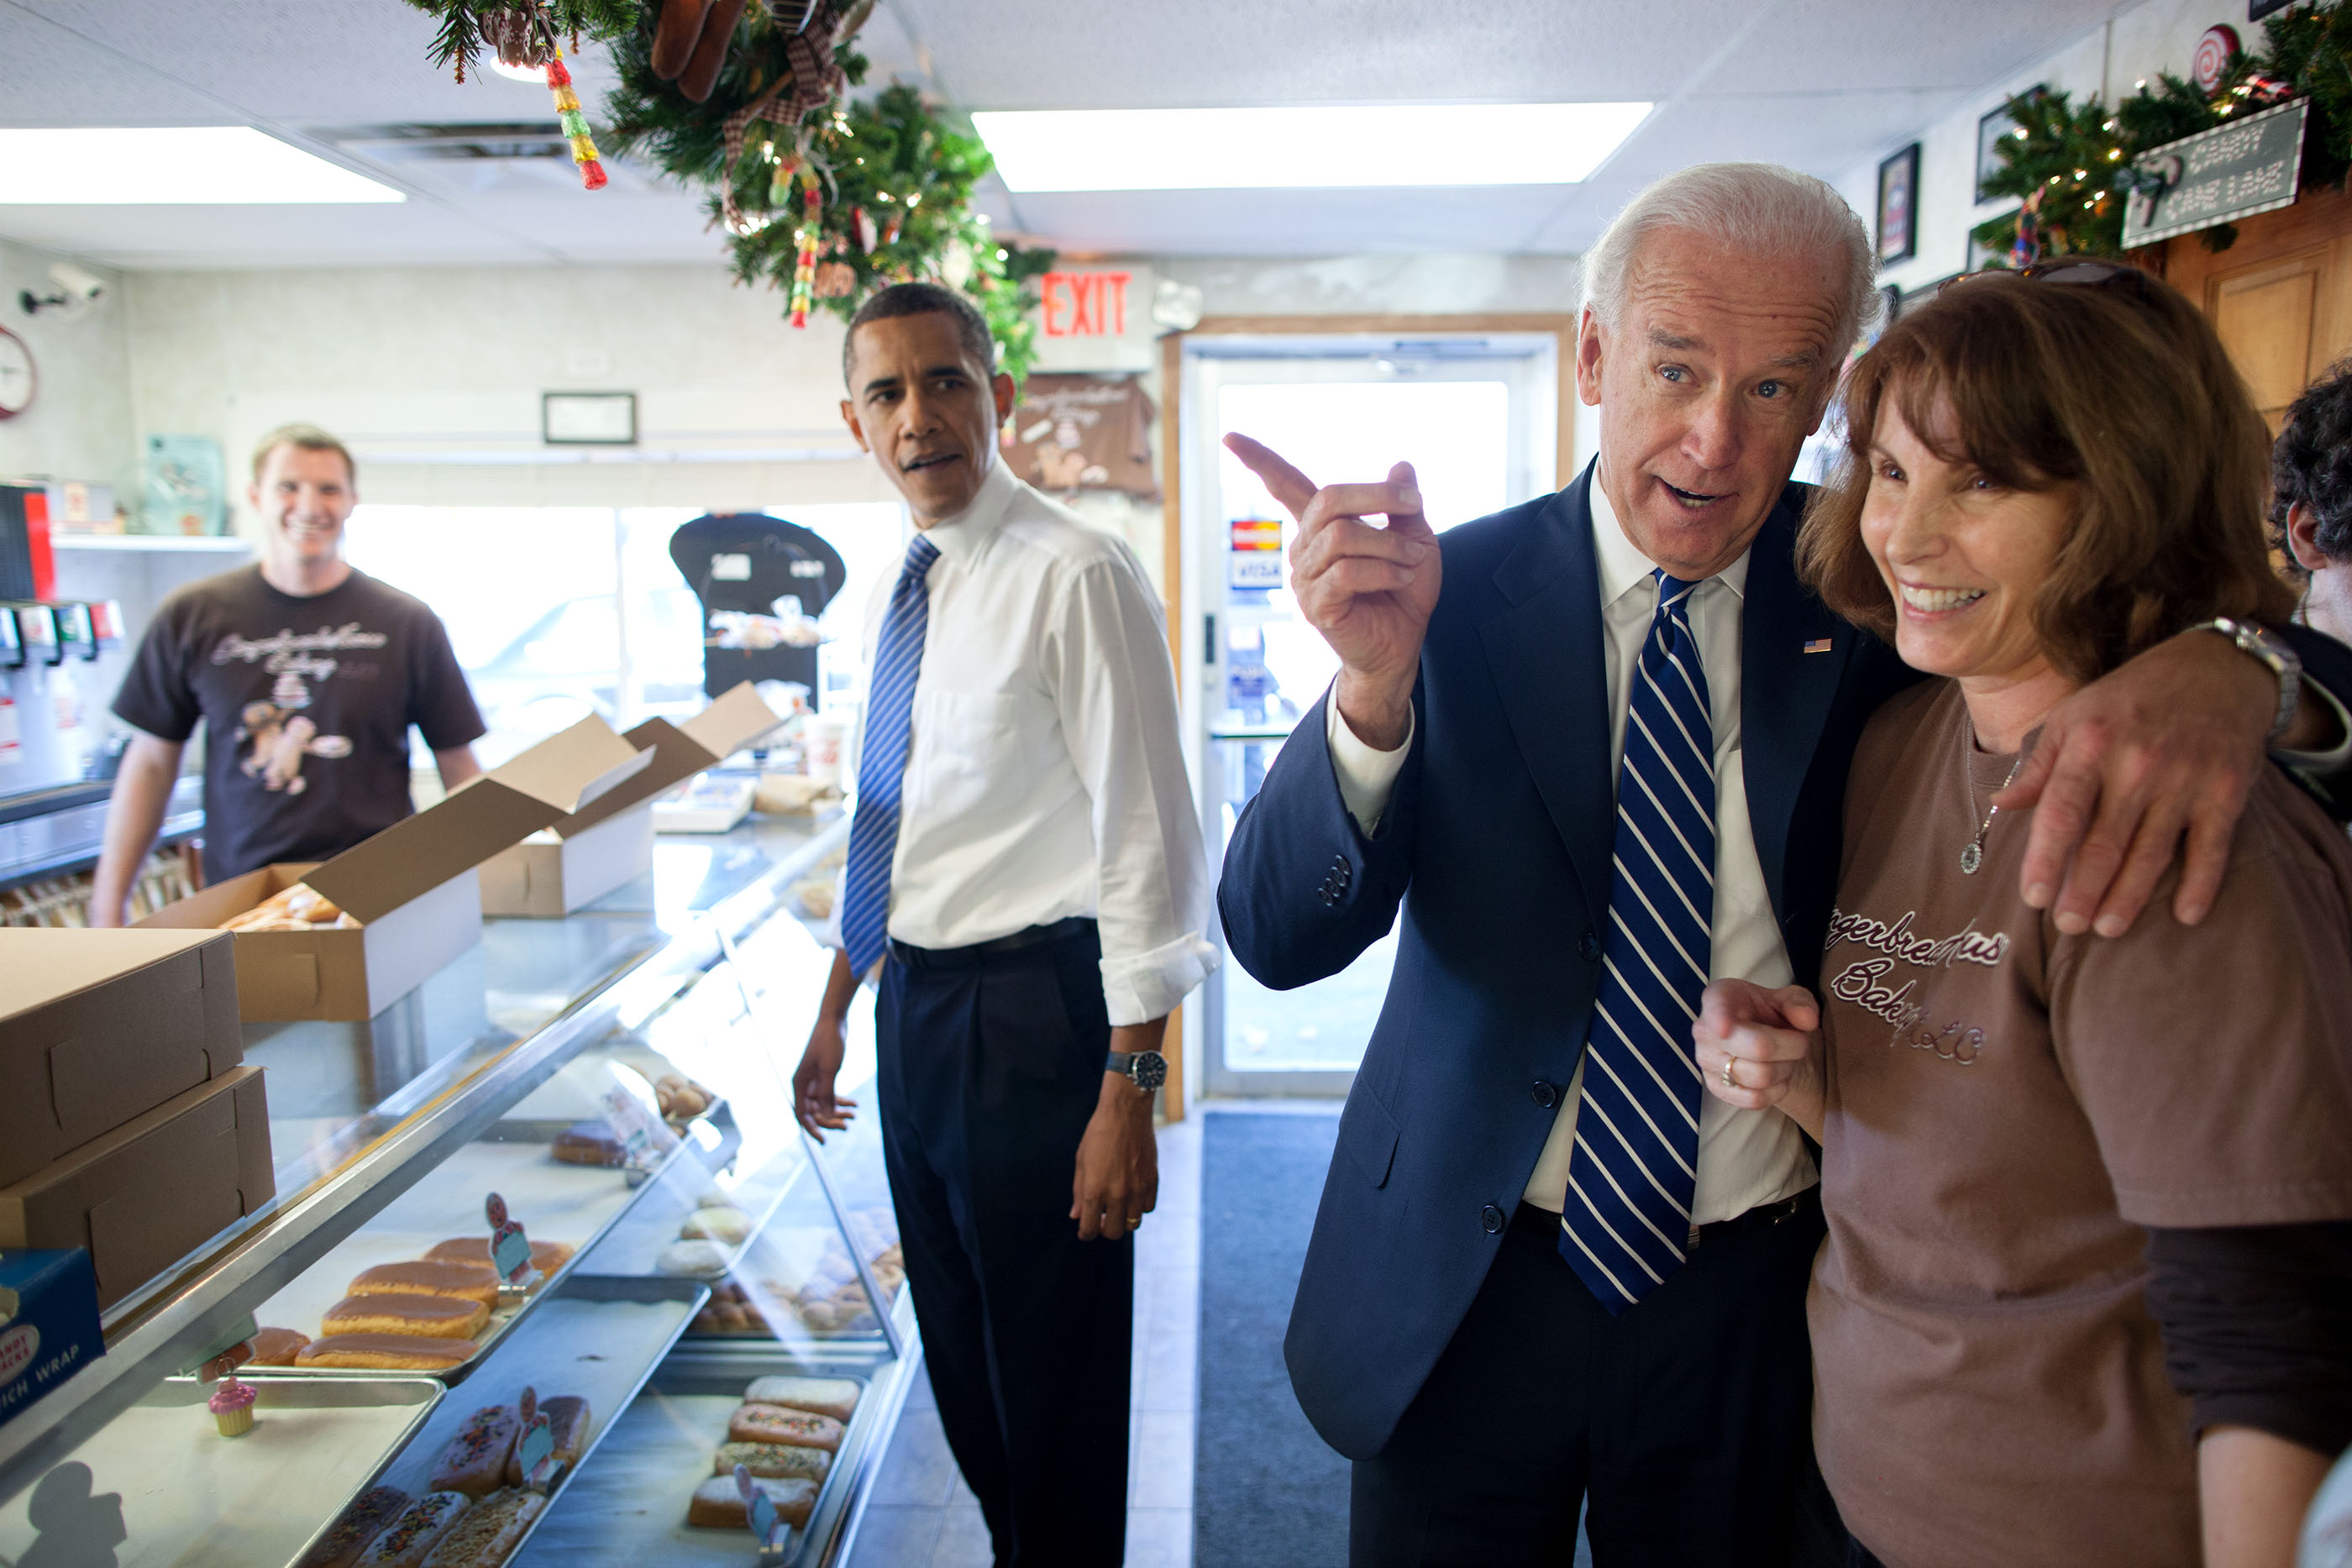 Indiana, Nov. 23, 2010. Dropping by the Gingerbread House Bakery in Kokomo with the Vice President. (Official White House Photo by Pete Souza)